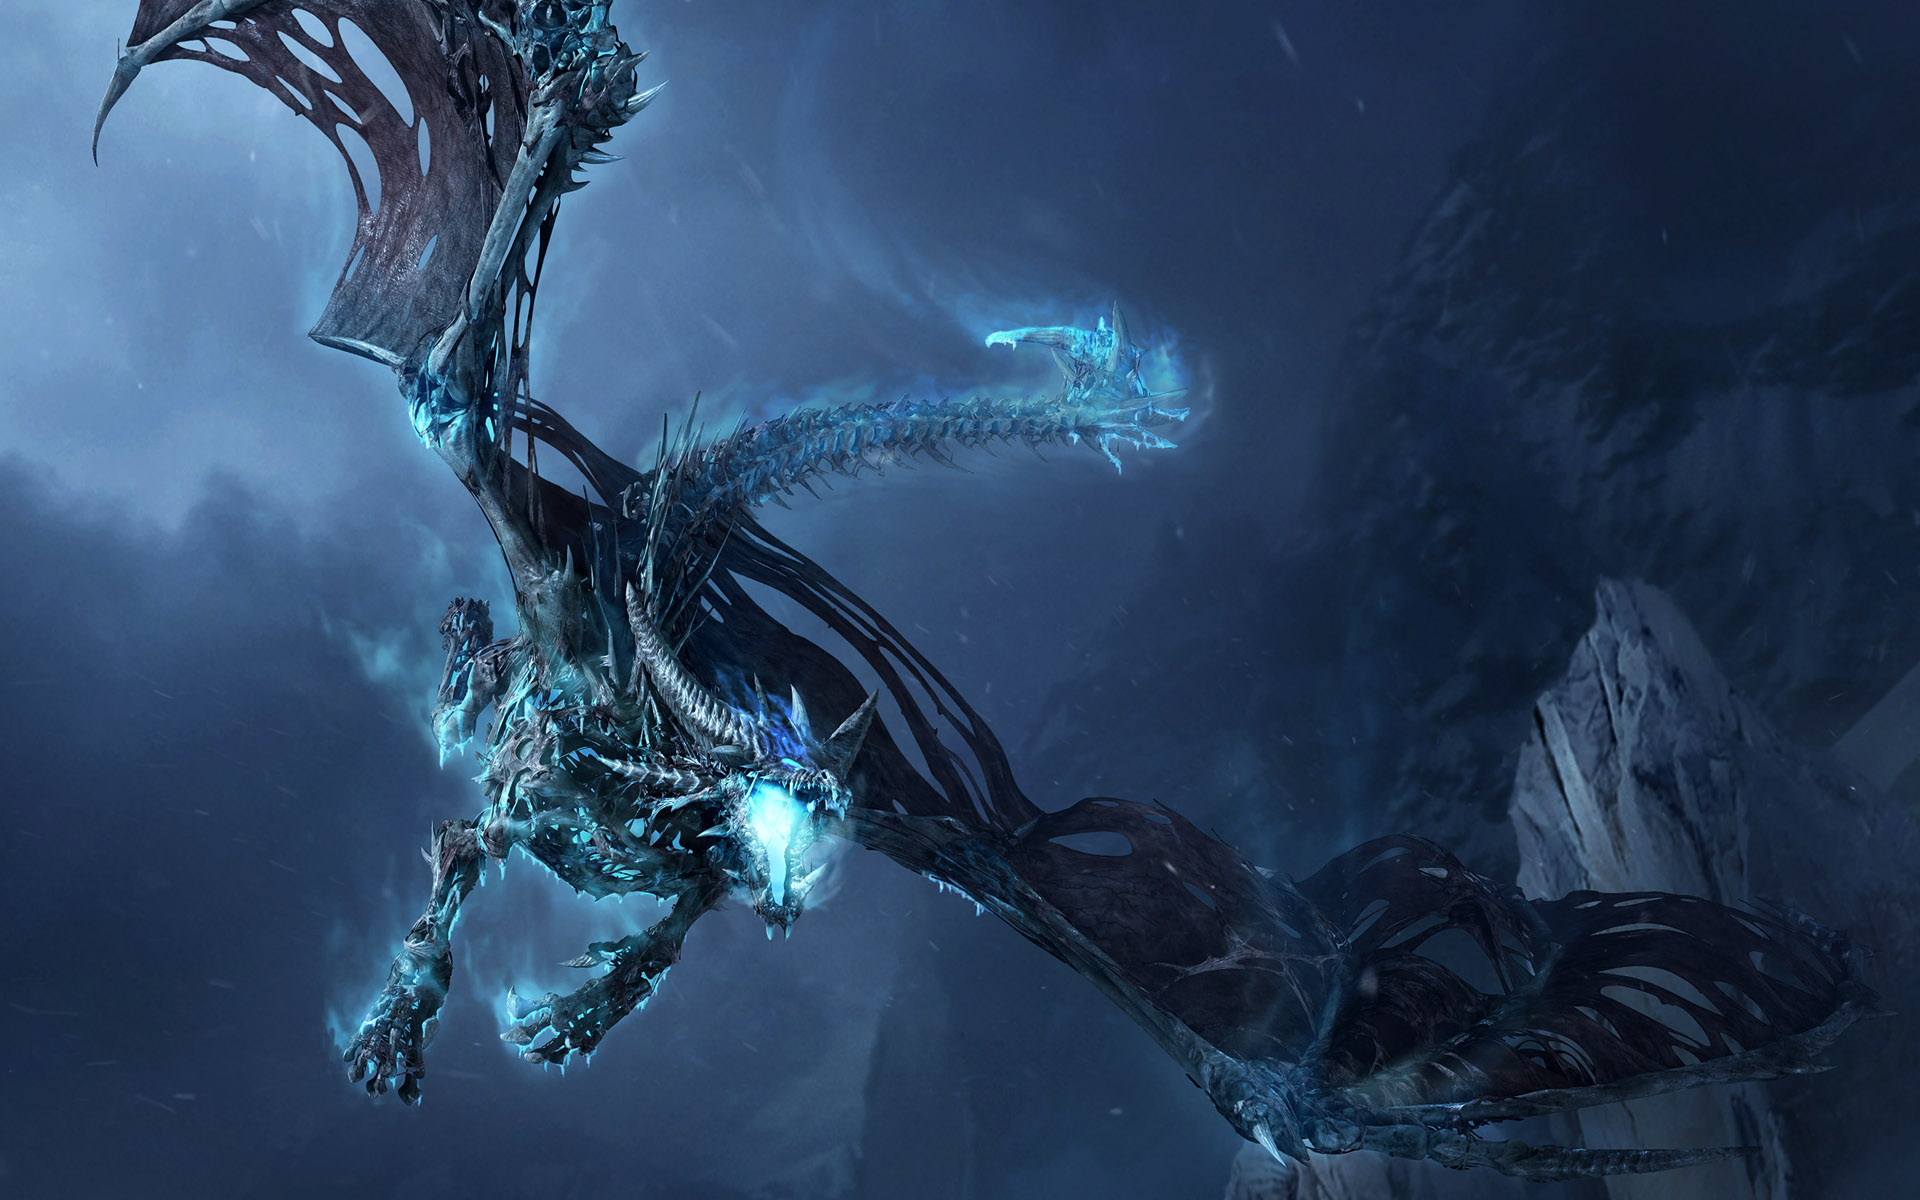 Download World of Warcraft Dragon Wallpaper pictures in high 1920x1200